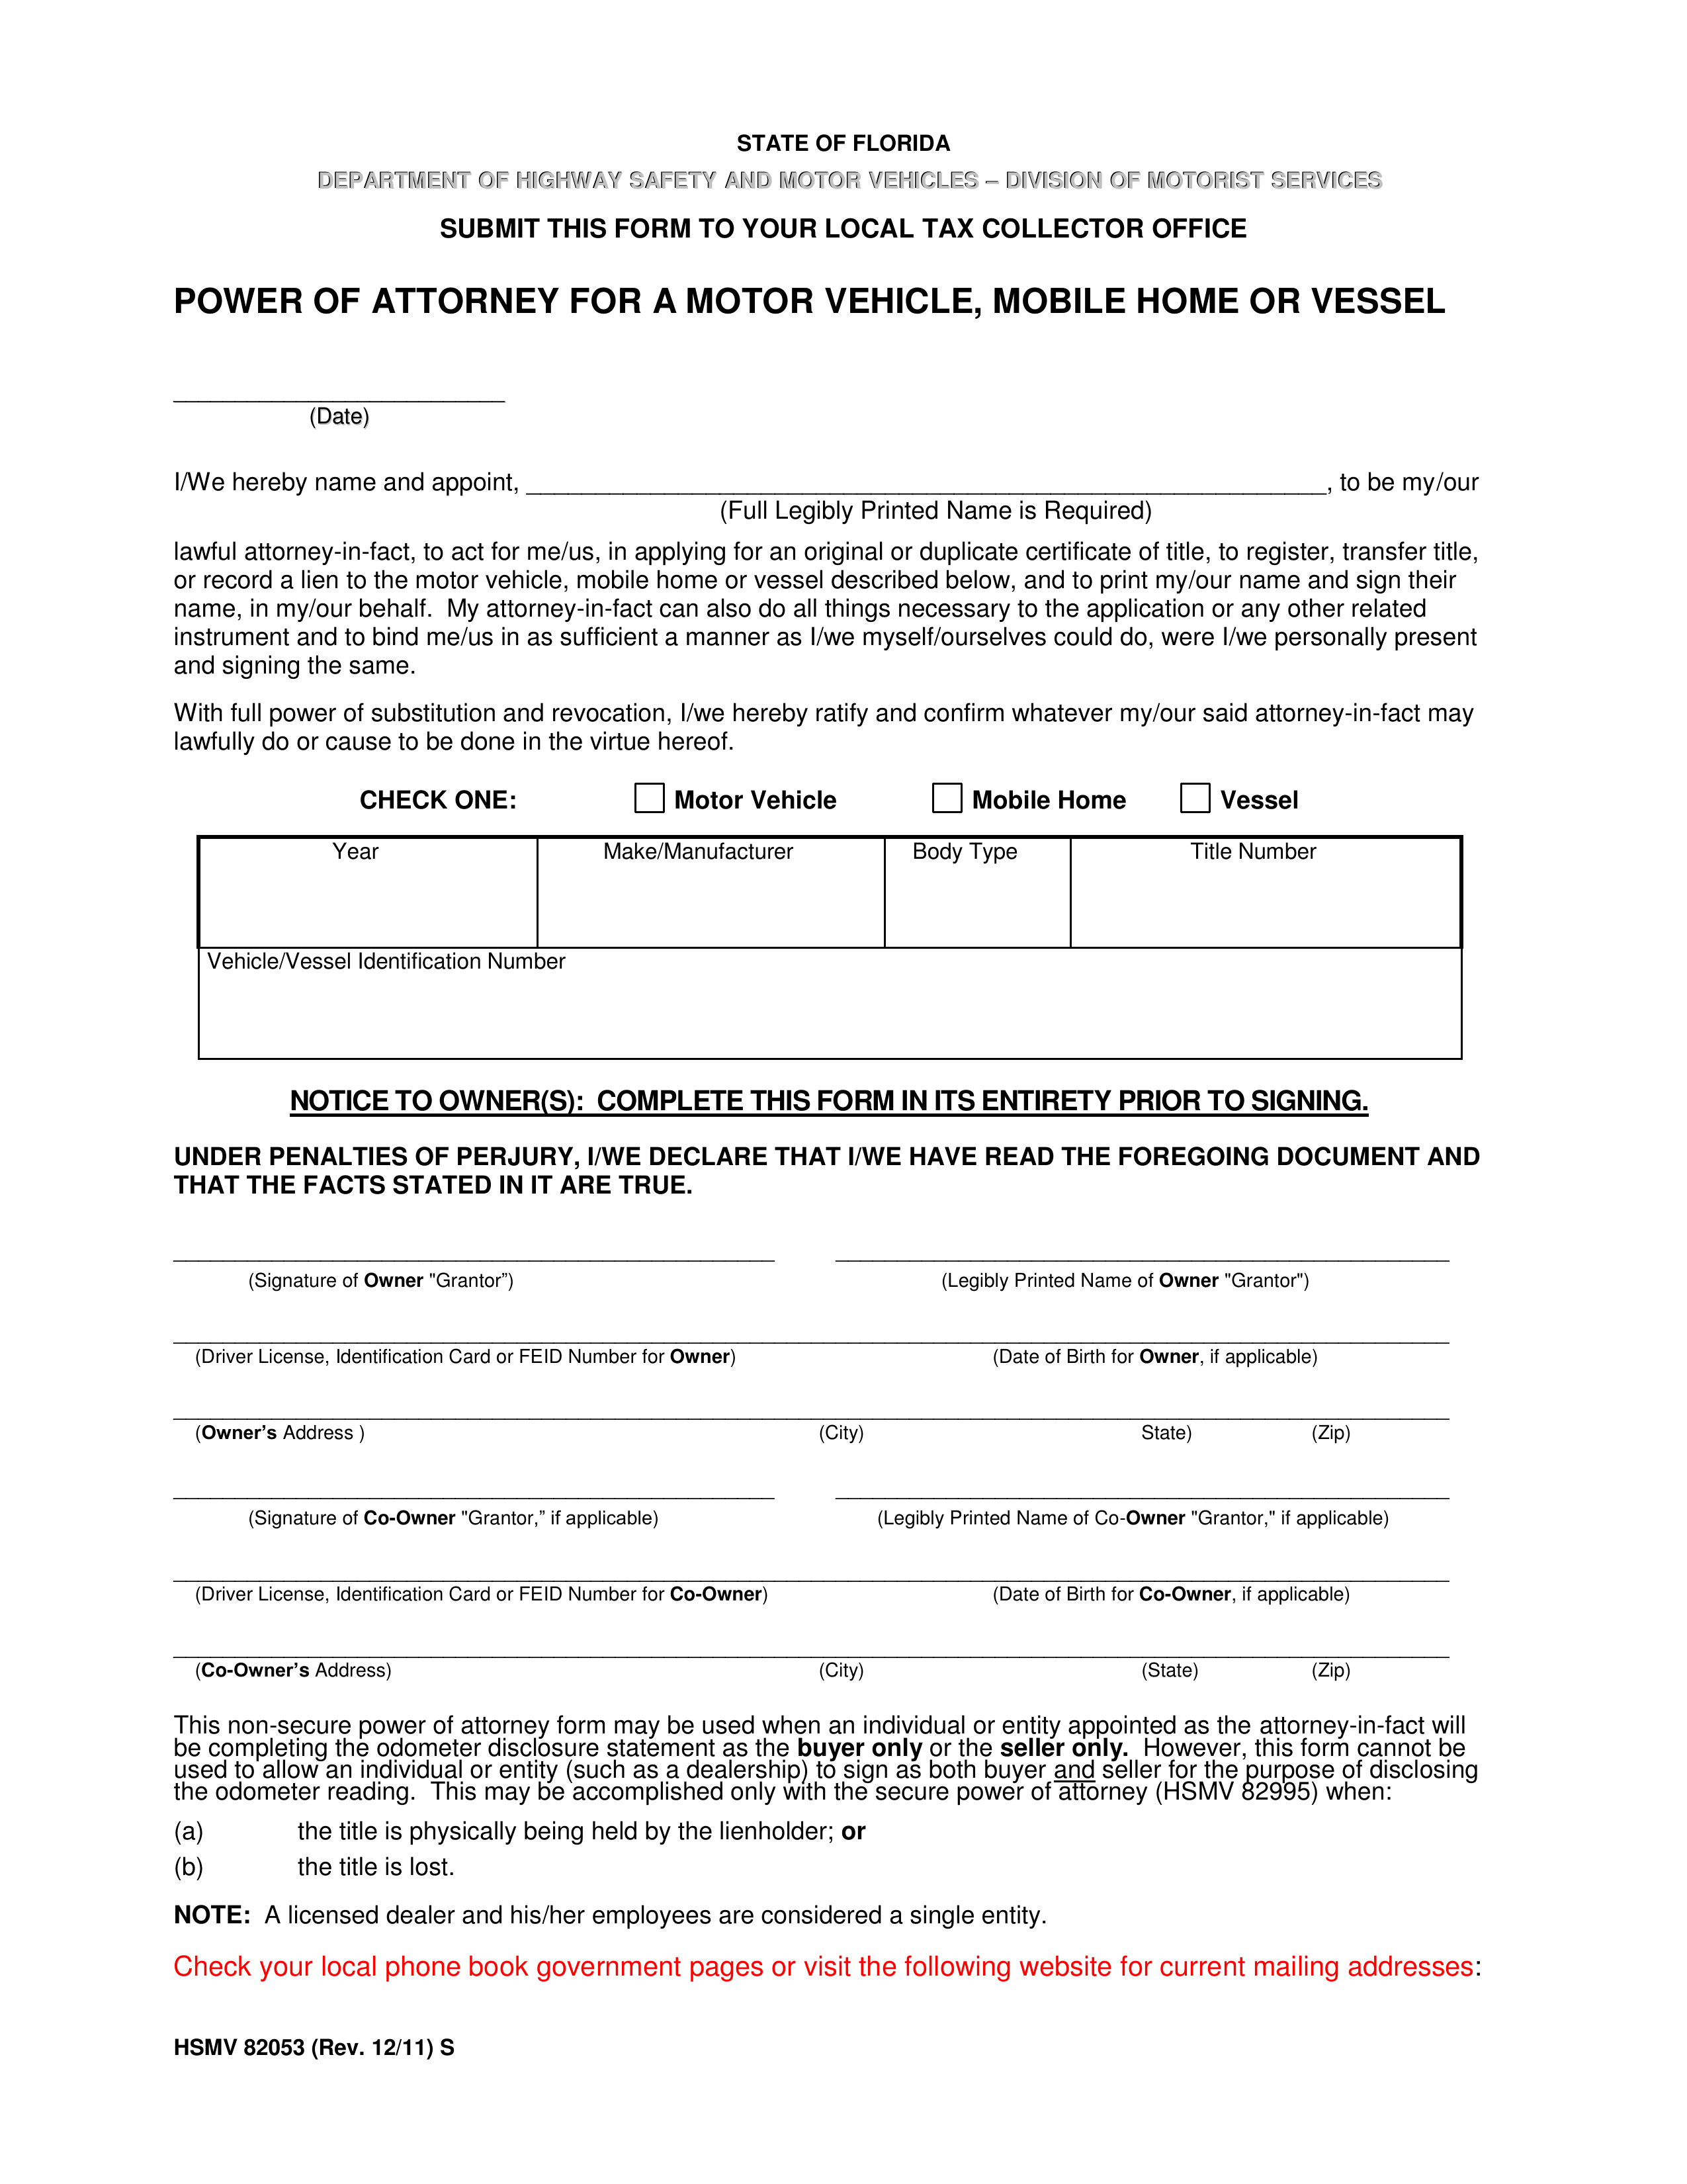 Free Florida Motor Vehicle Power of Attorney Form - PDF